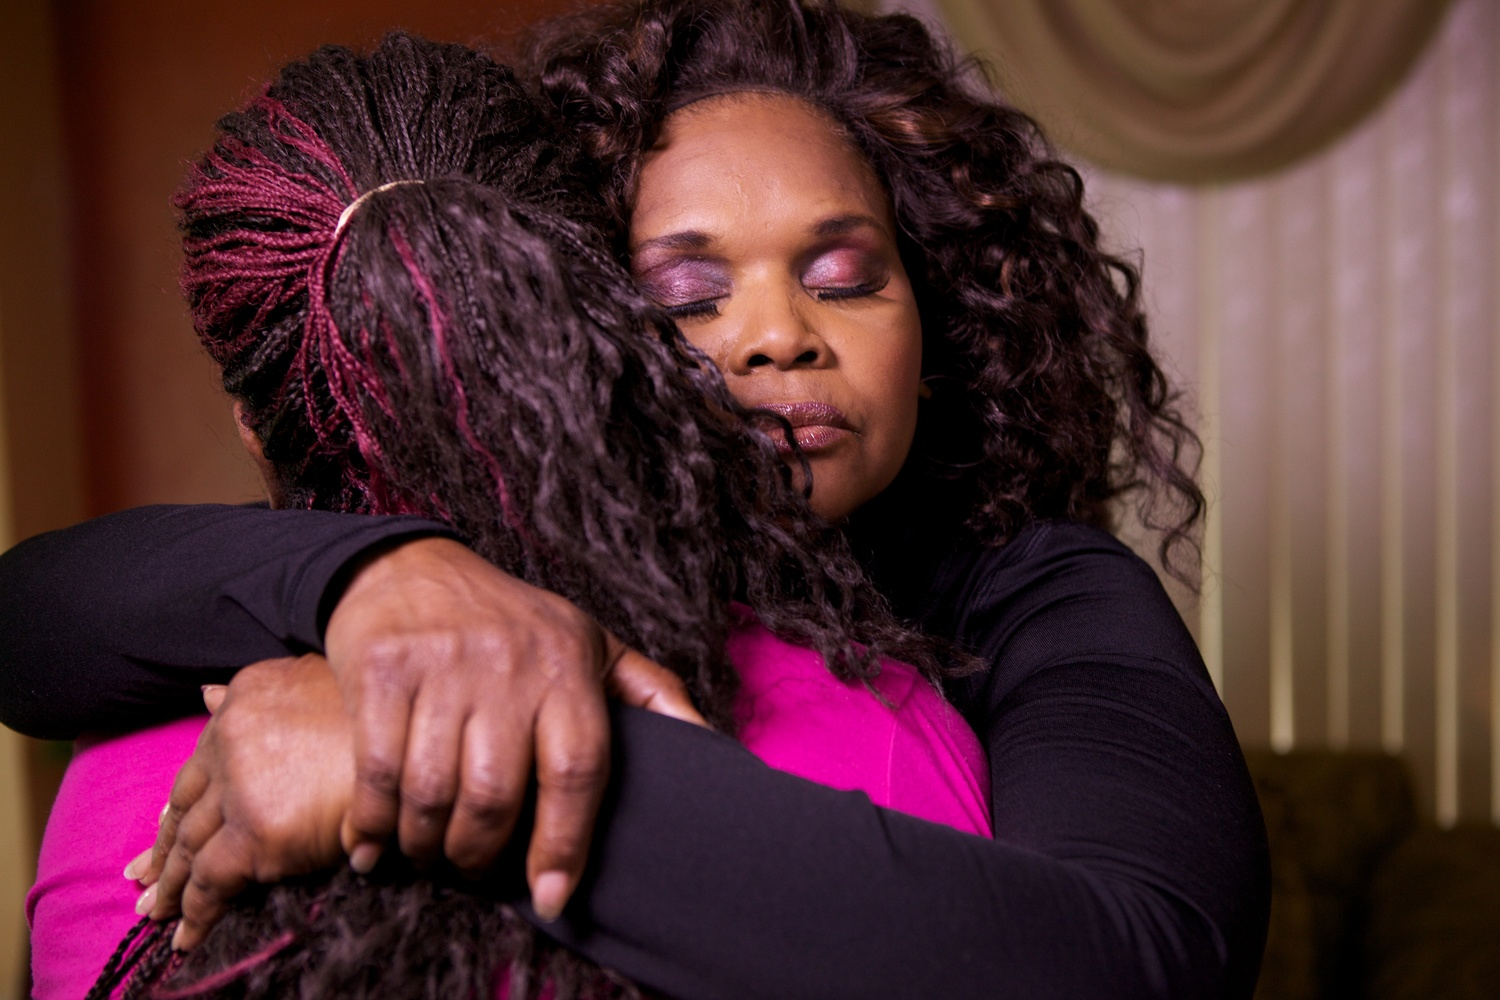 The Dreamcatcher documentary follows the work of Brenda Myers-Powell in assisting sex workers in Chicago.